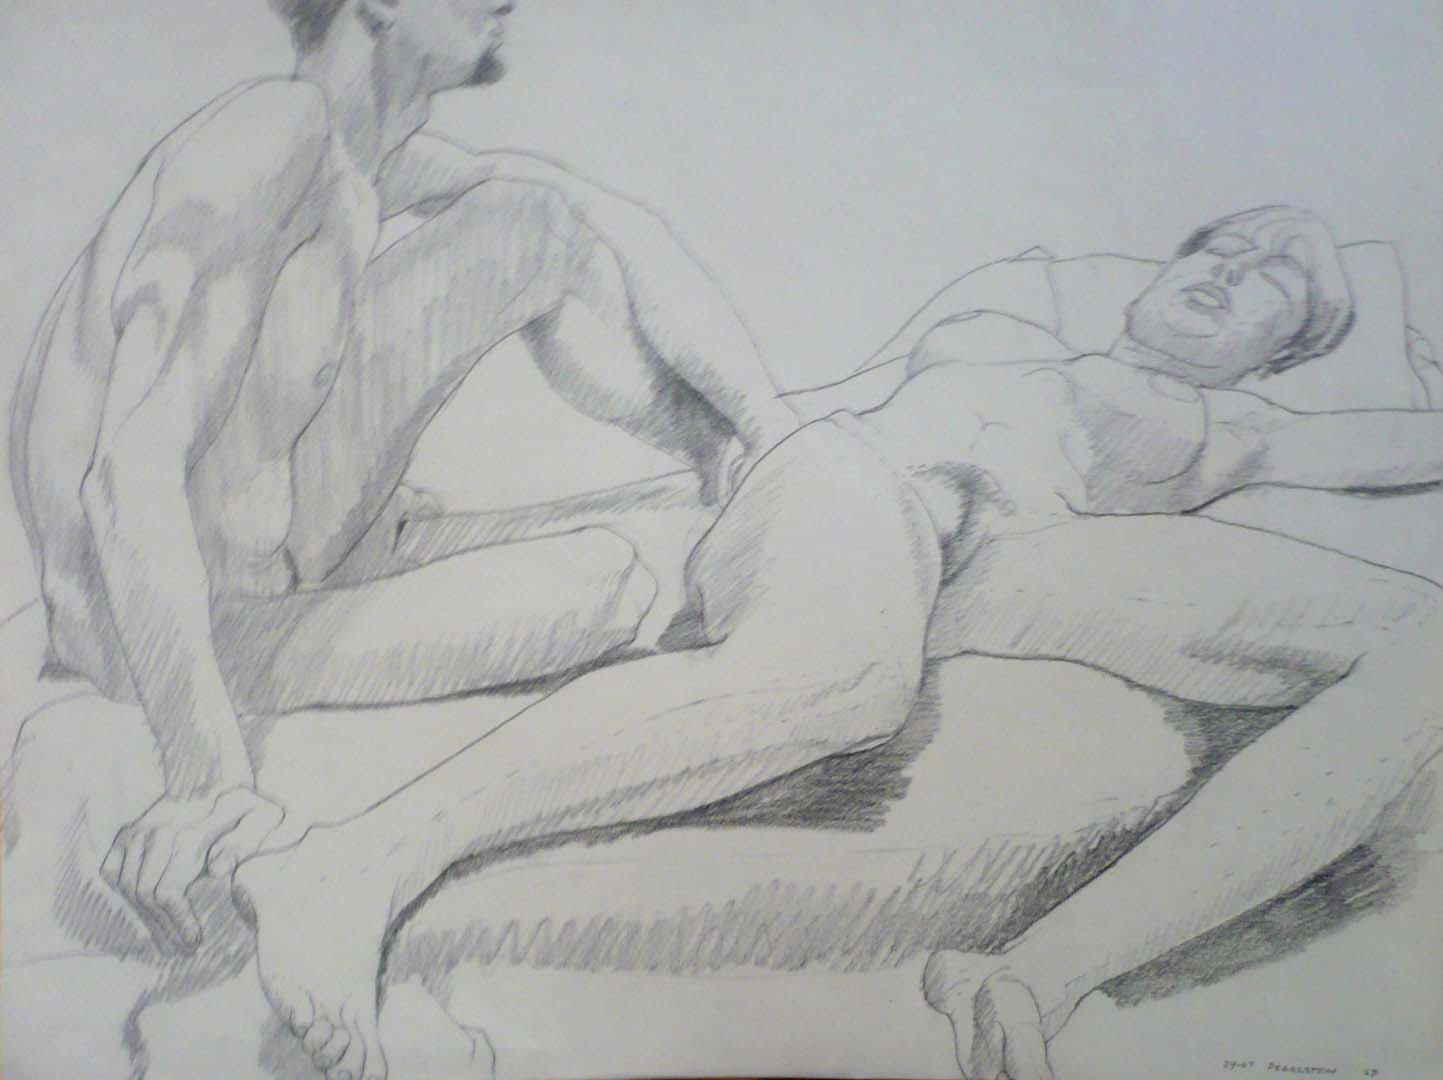 1967 Seated Male Model and Reclining Female Pencil 17.875 x 23.5